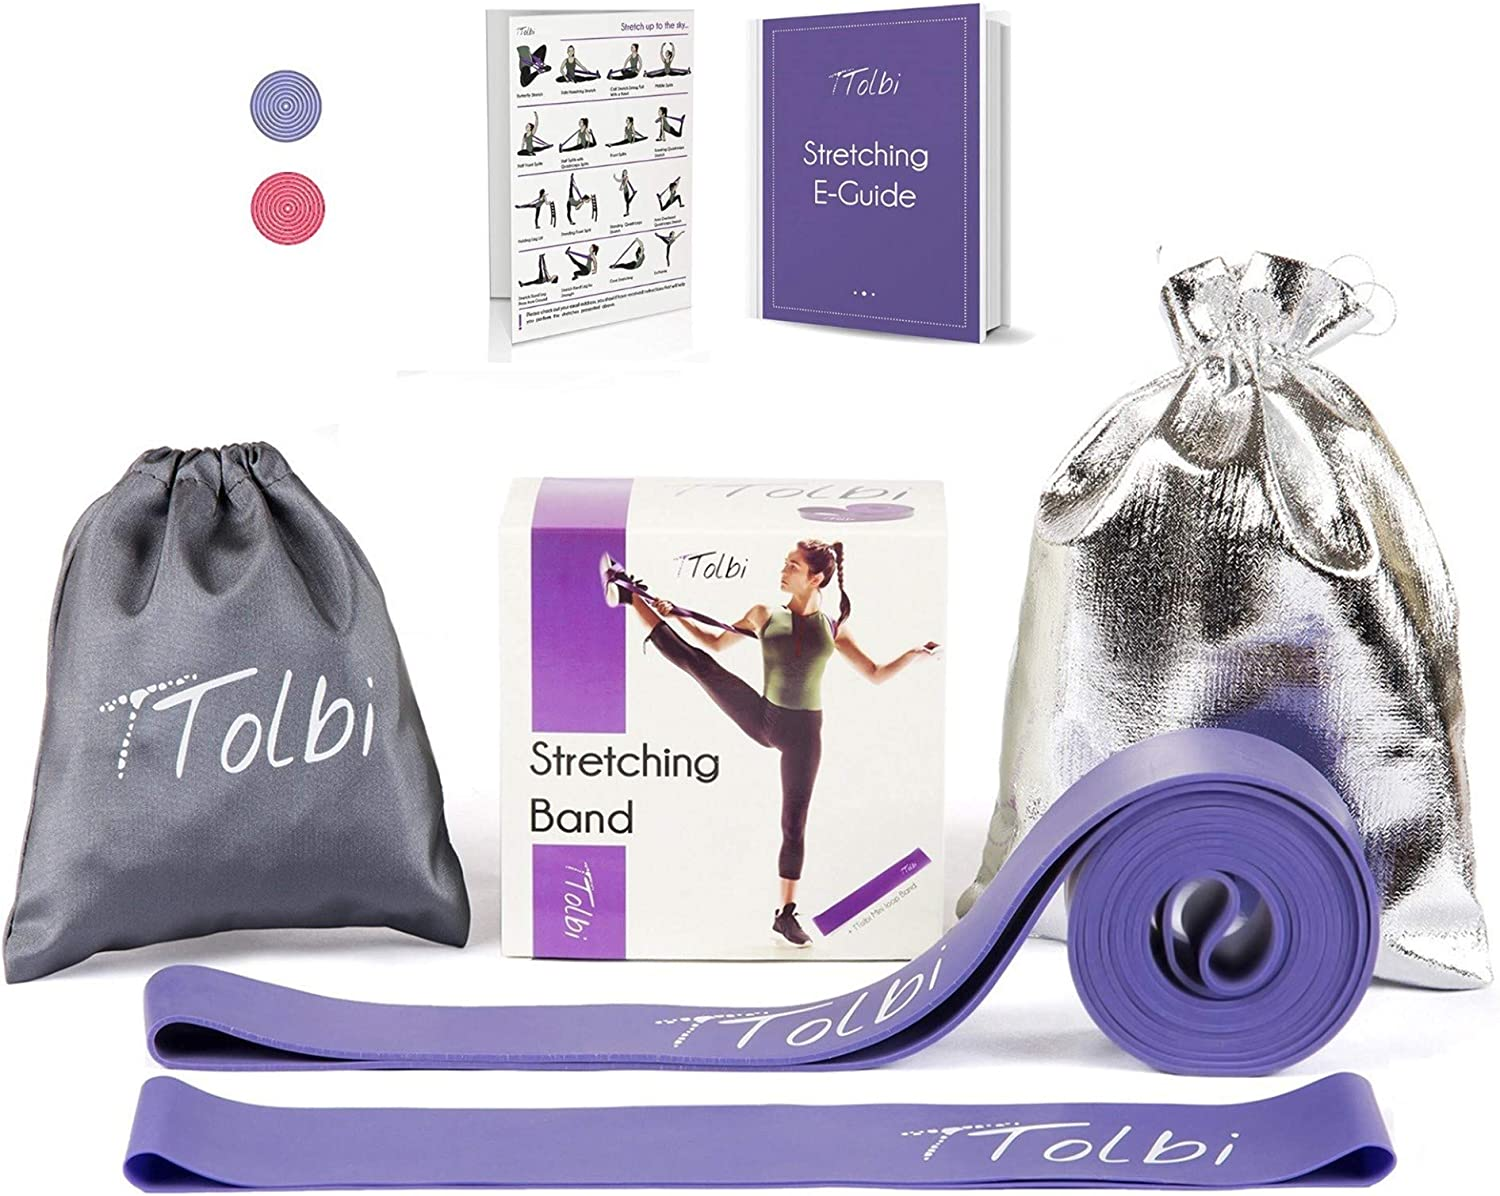 TTolbi Dance Equipment : Stretch Bands for Dancers and Ballet | Dance Stretch Bands for Flexibility, Mobility and Strength | Dance Stuff | Gymnastics Stuff | Dance Accesories : Sports & Outdoors